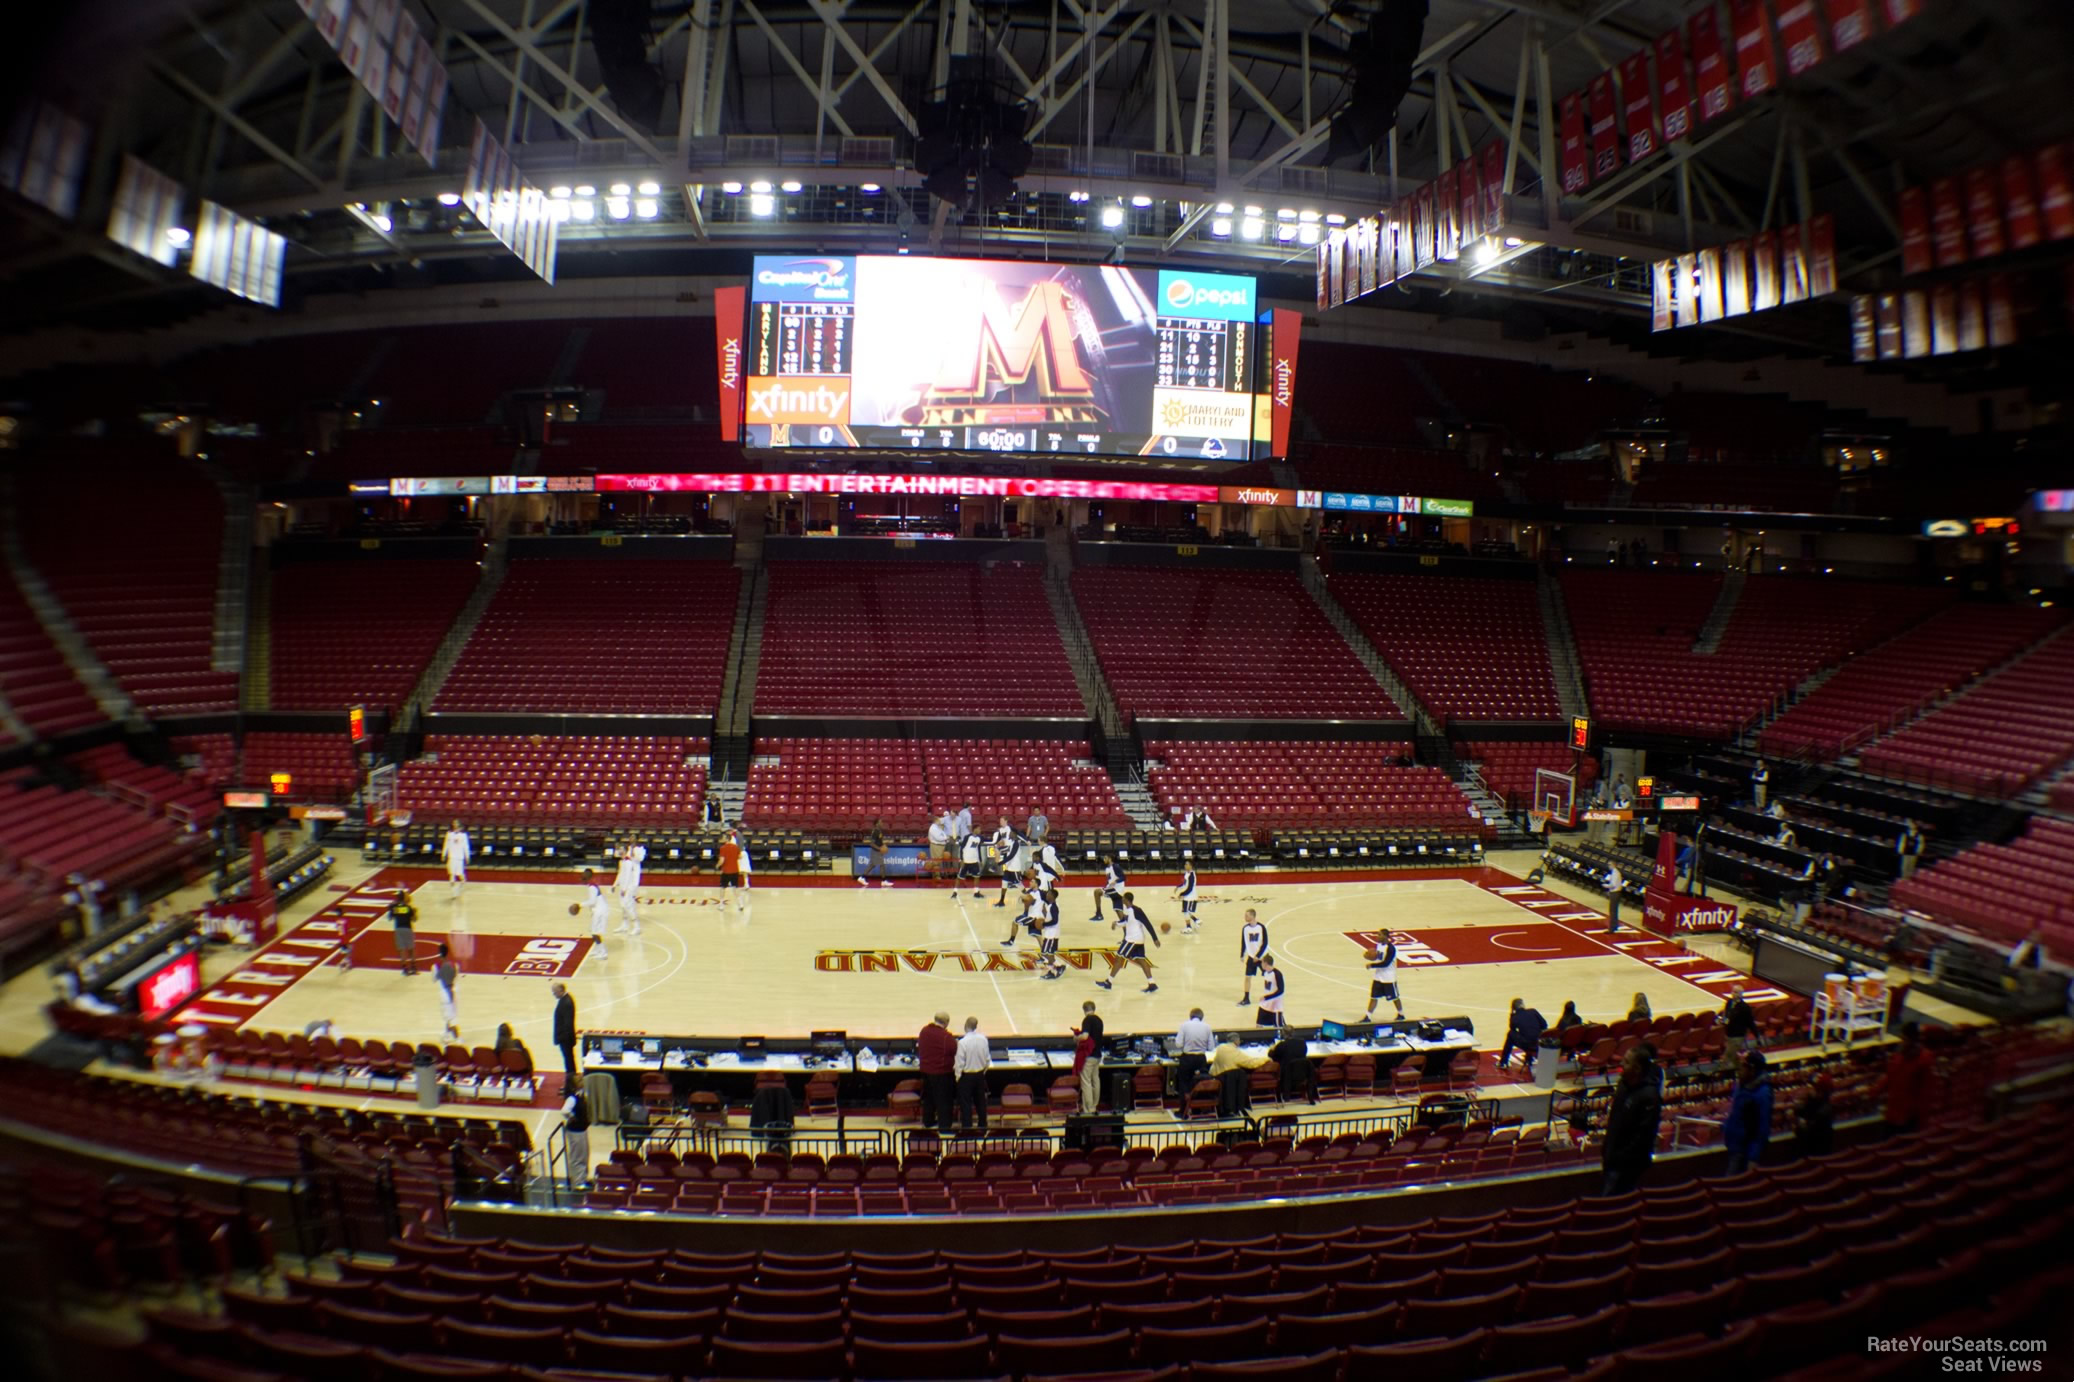 xfinity center seat view. Black Bedroom Furniture Sets. Home Design Ideas